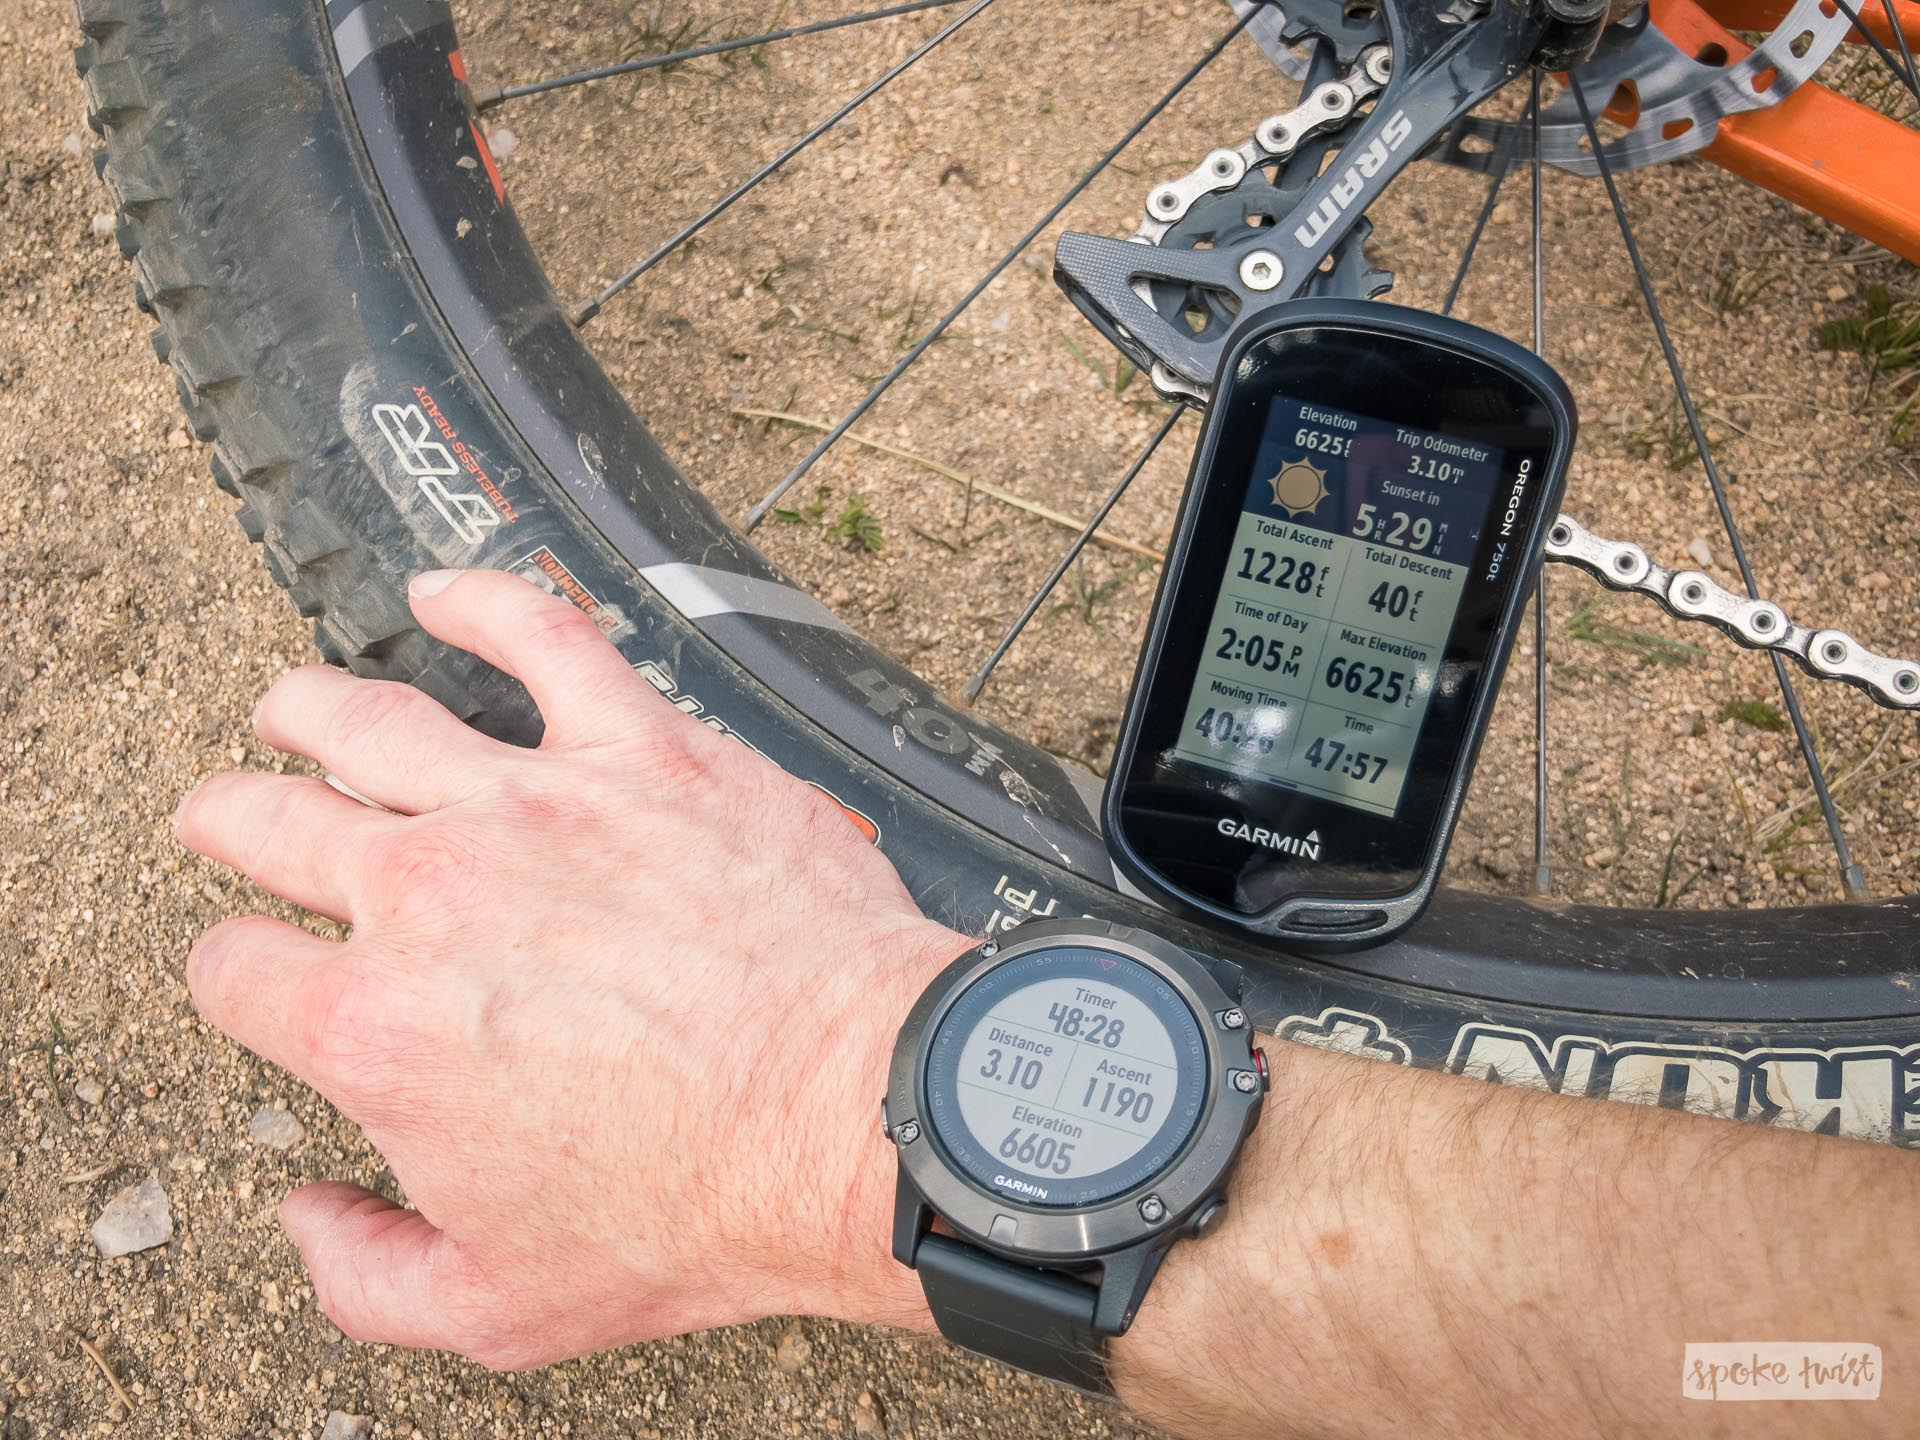 Mountain Biking with the Garmin Fenix 5X – Spoke Twist